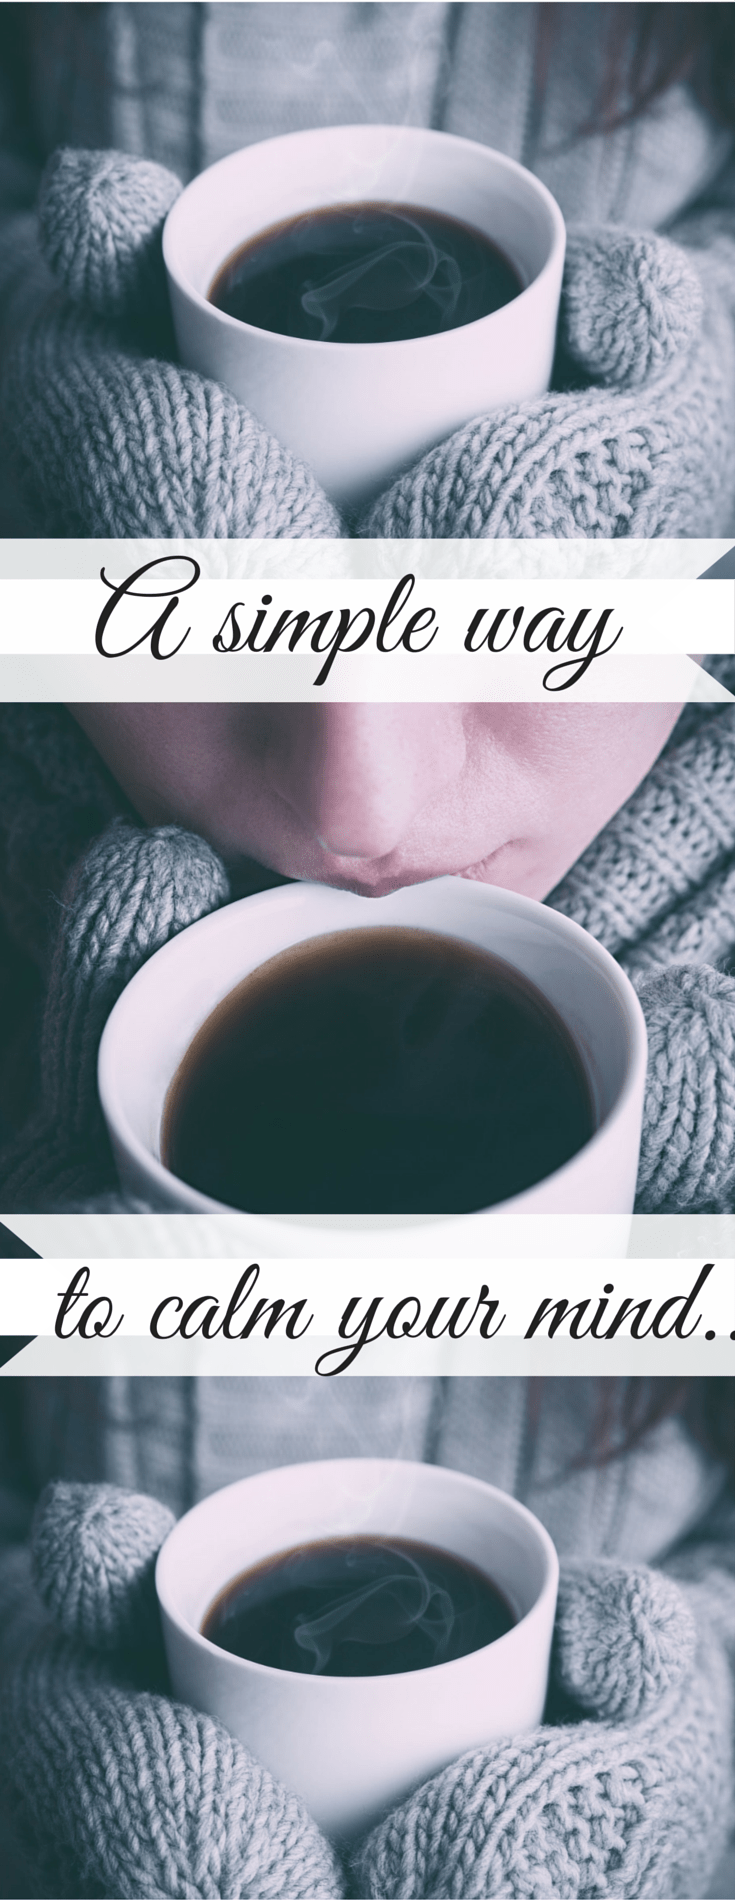 a-simple-way-to-calm-your-mind